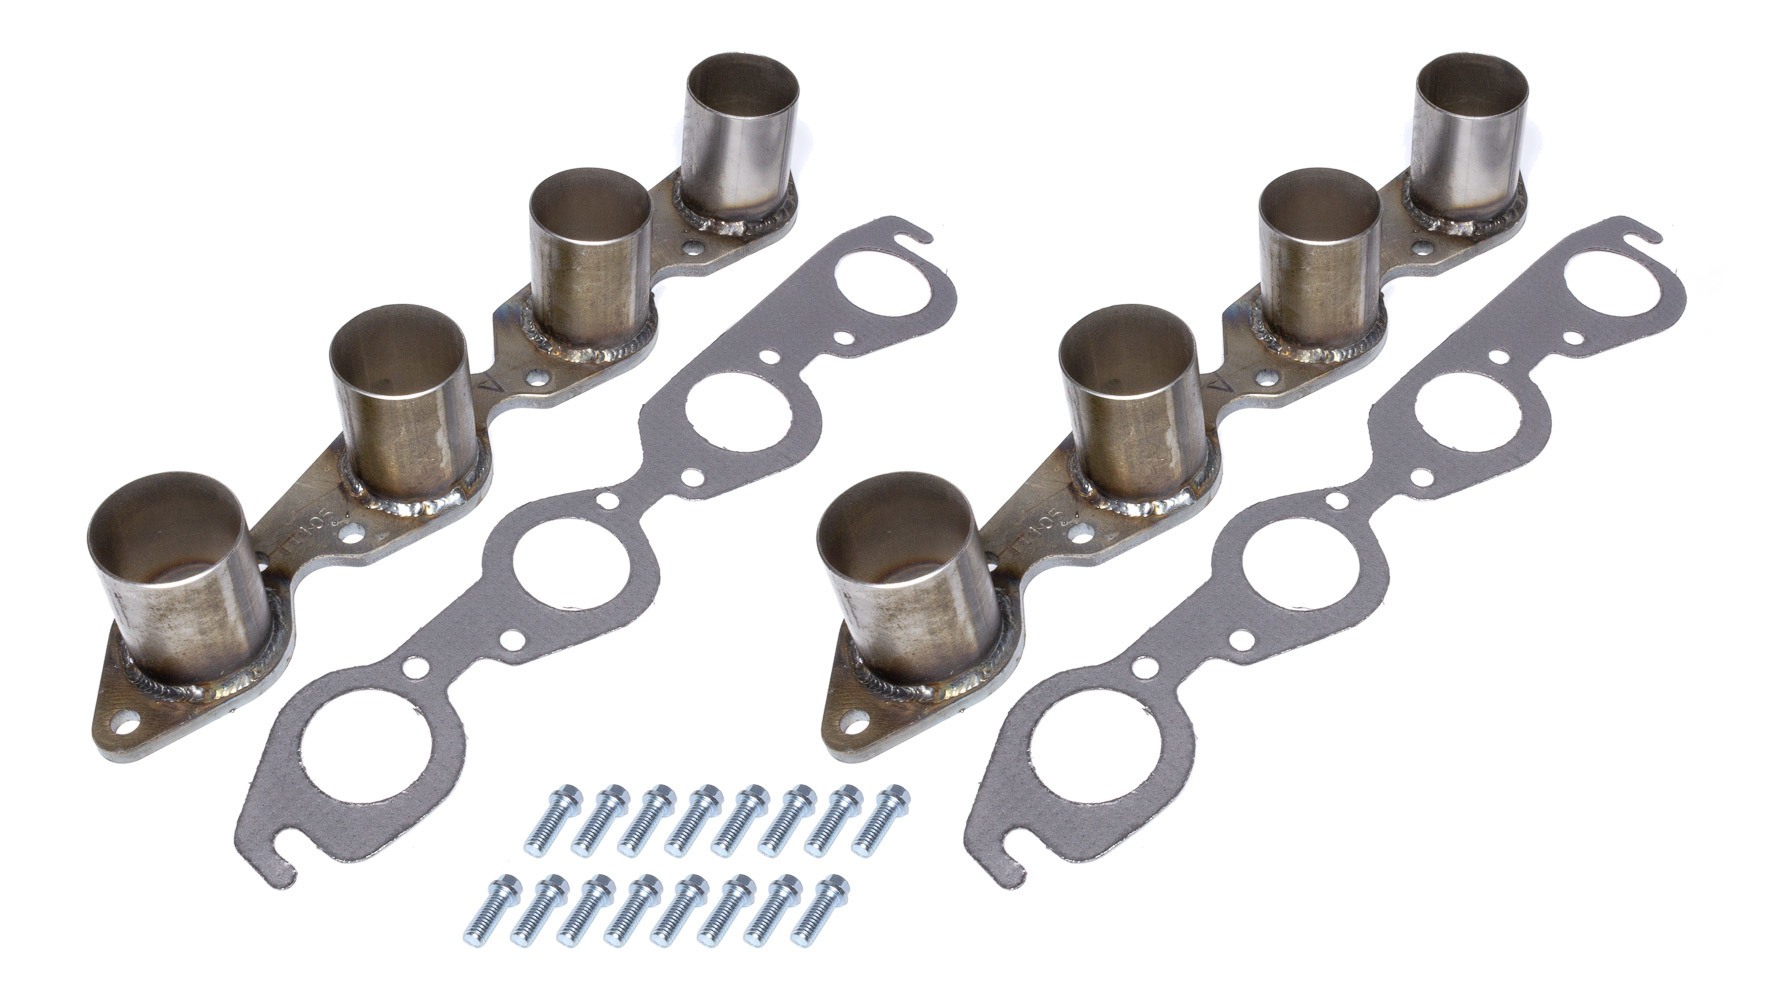 Hedman 11105 Header Flange, Hustler Race, Stubs, 3/8 in Thick, 2-1/4 in Round Port, Steel, Big Block Chevy, Pair